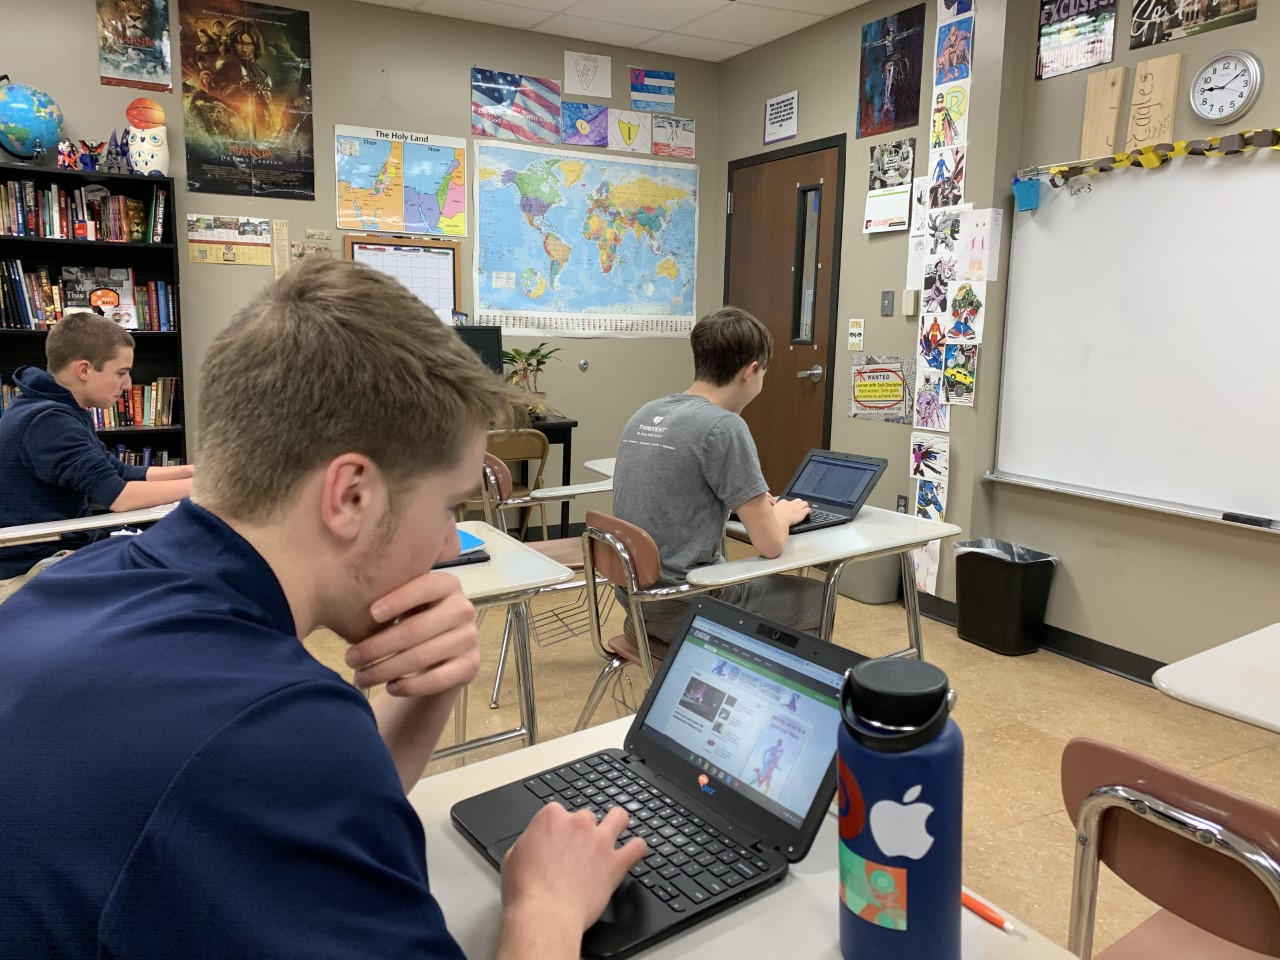 Senior Liam Carr, Freshman Jordan Suess, and Freshman Zac Zarski working on their Journalism stories in Mr. Mueller's classroom